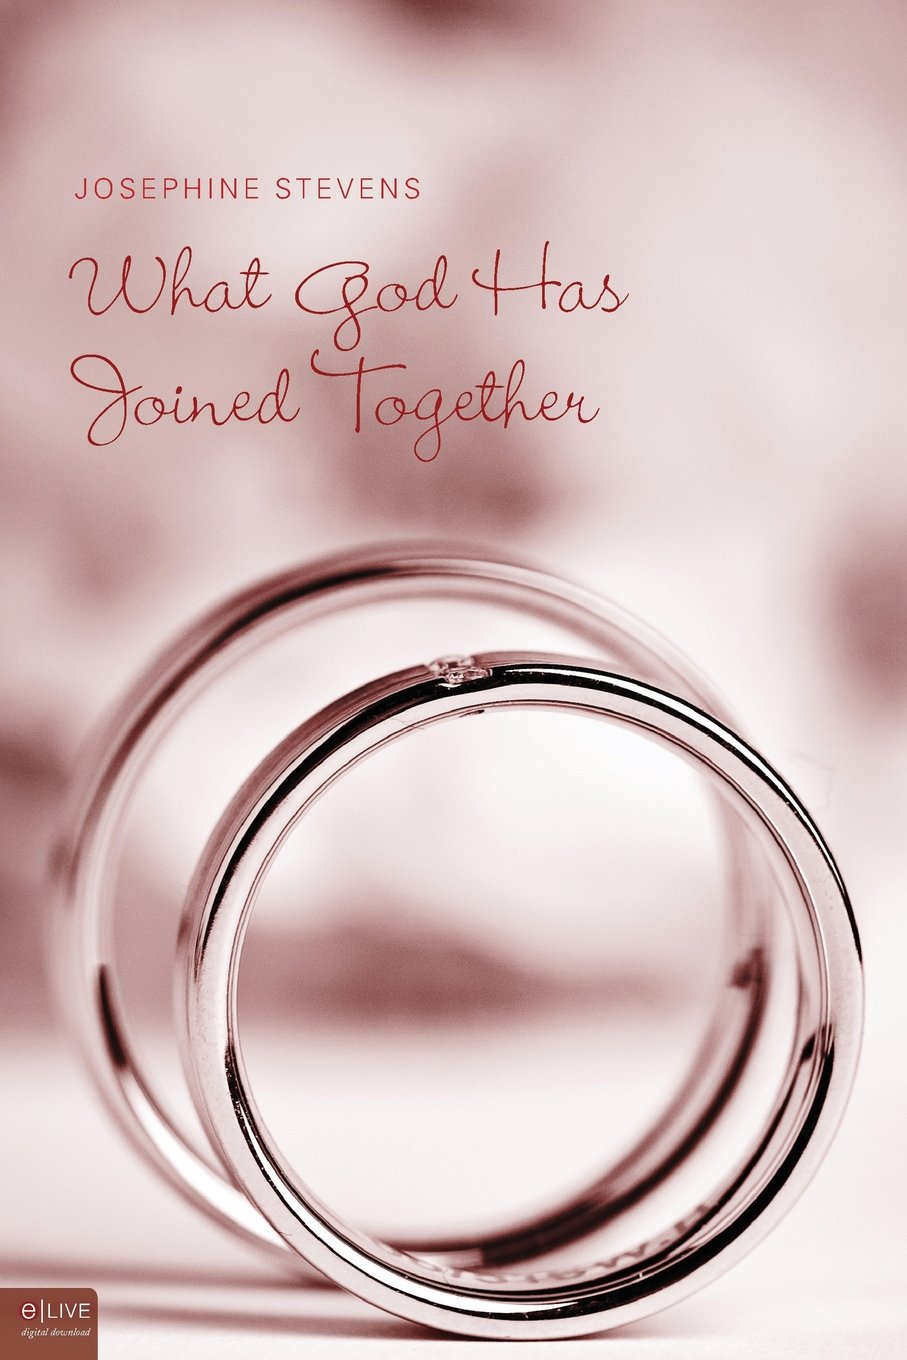 Download What God Has Joined Together ePub fb2 book